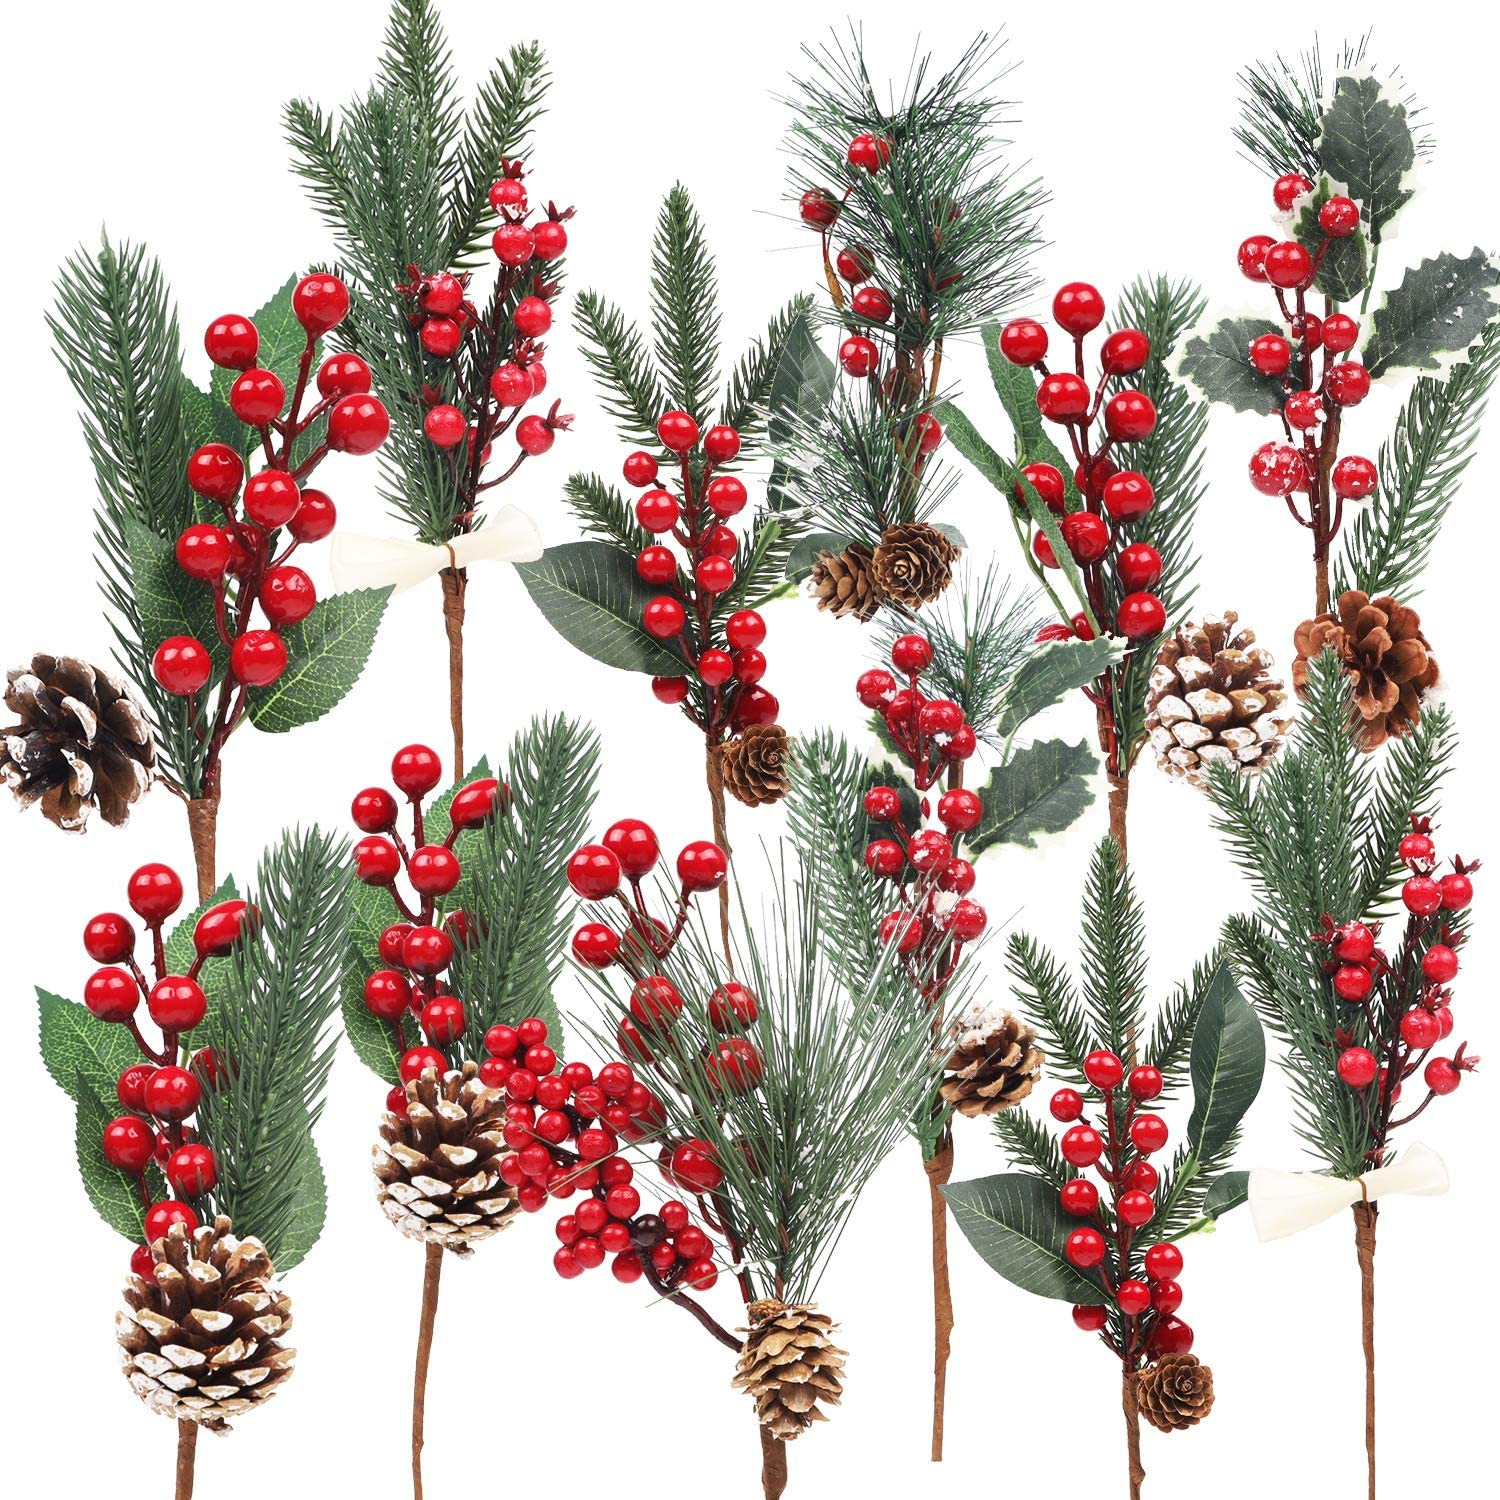 DR.DUDU 12 Pack Christmas Artificial Berry Twigs for Christmas Tree Decoration, DIY Christmas Red Berry Stems Spray for Crafts Wreath Garland Christmas Ornaments Decor, 6 Designs